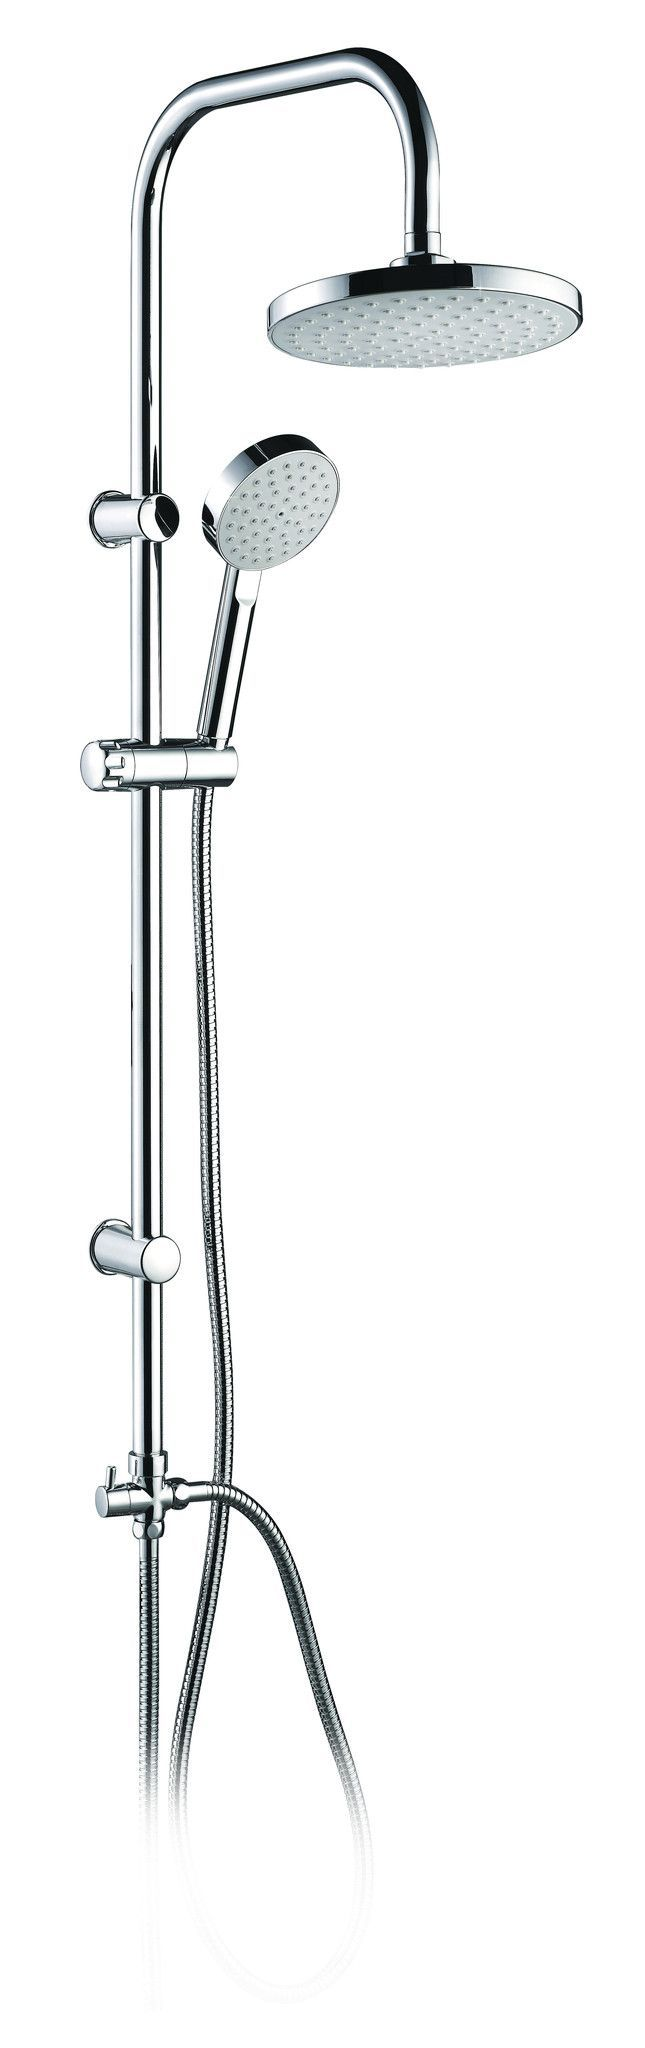 ME Lago Shower System Column W/ Shower Head & Hand Held shower ...